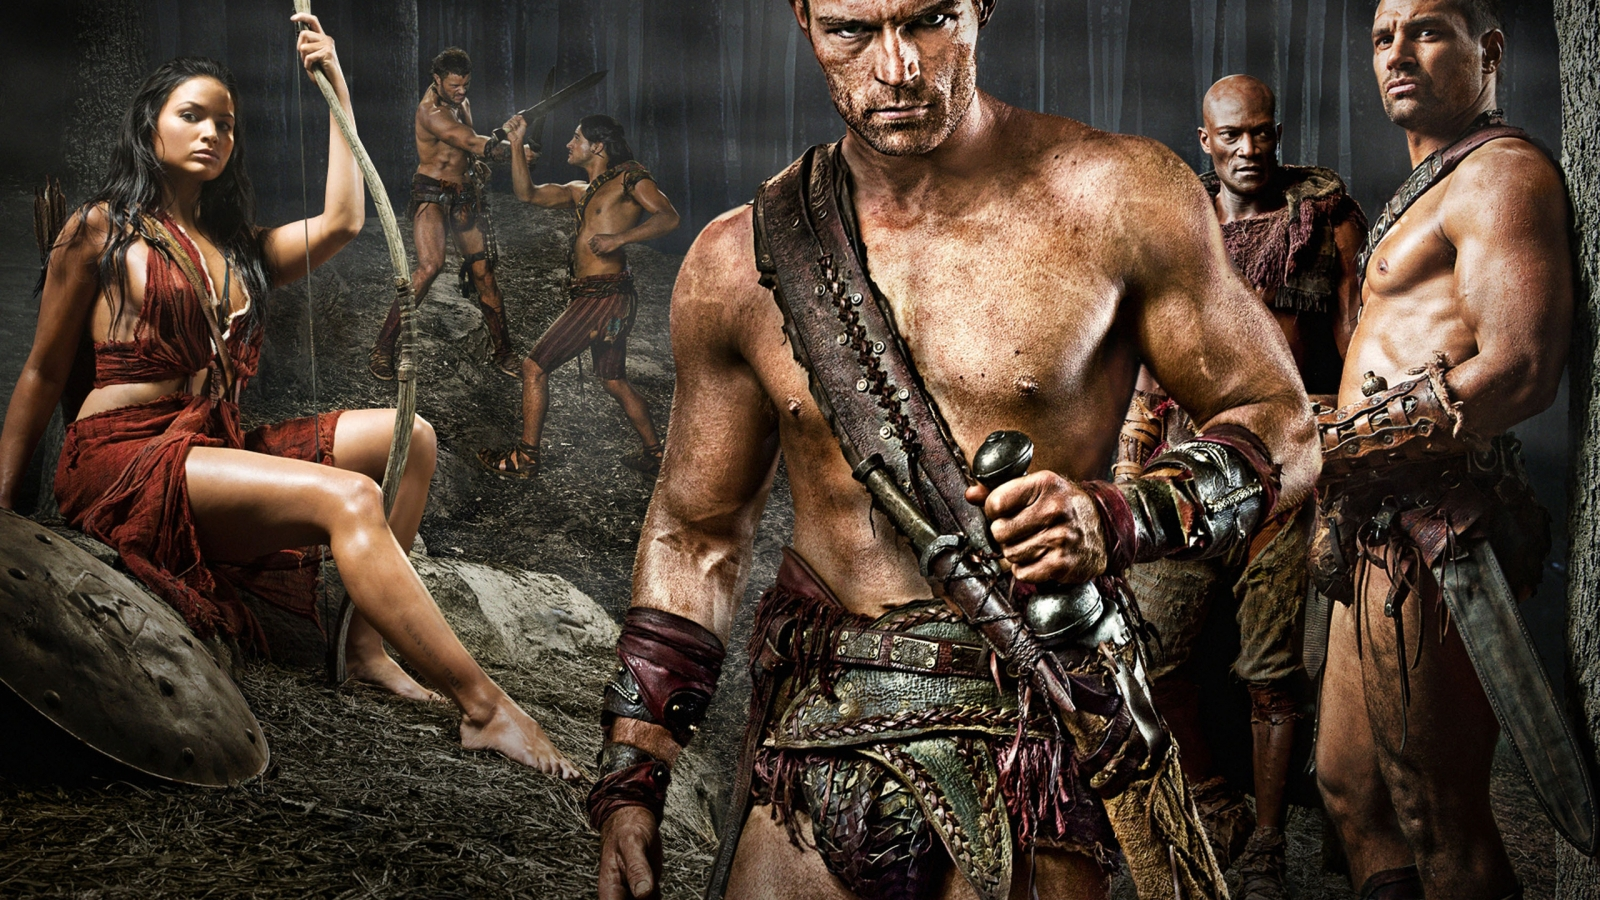 Spartacus Poster for 1600 x 900 HDTV resolution